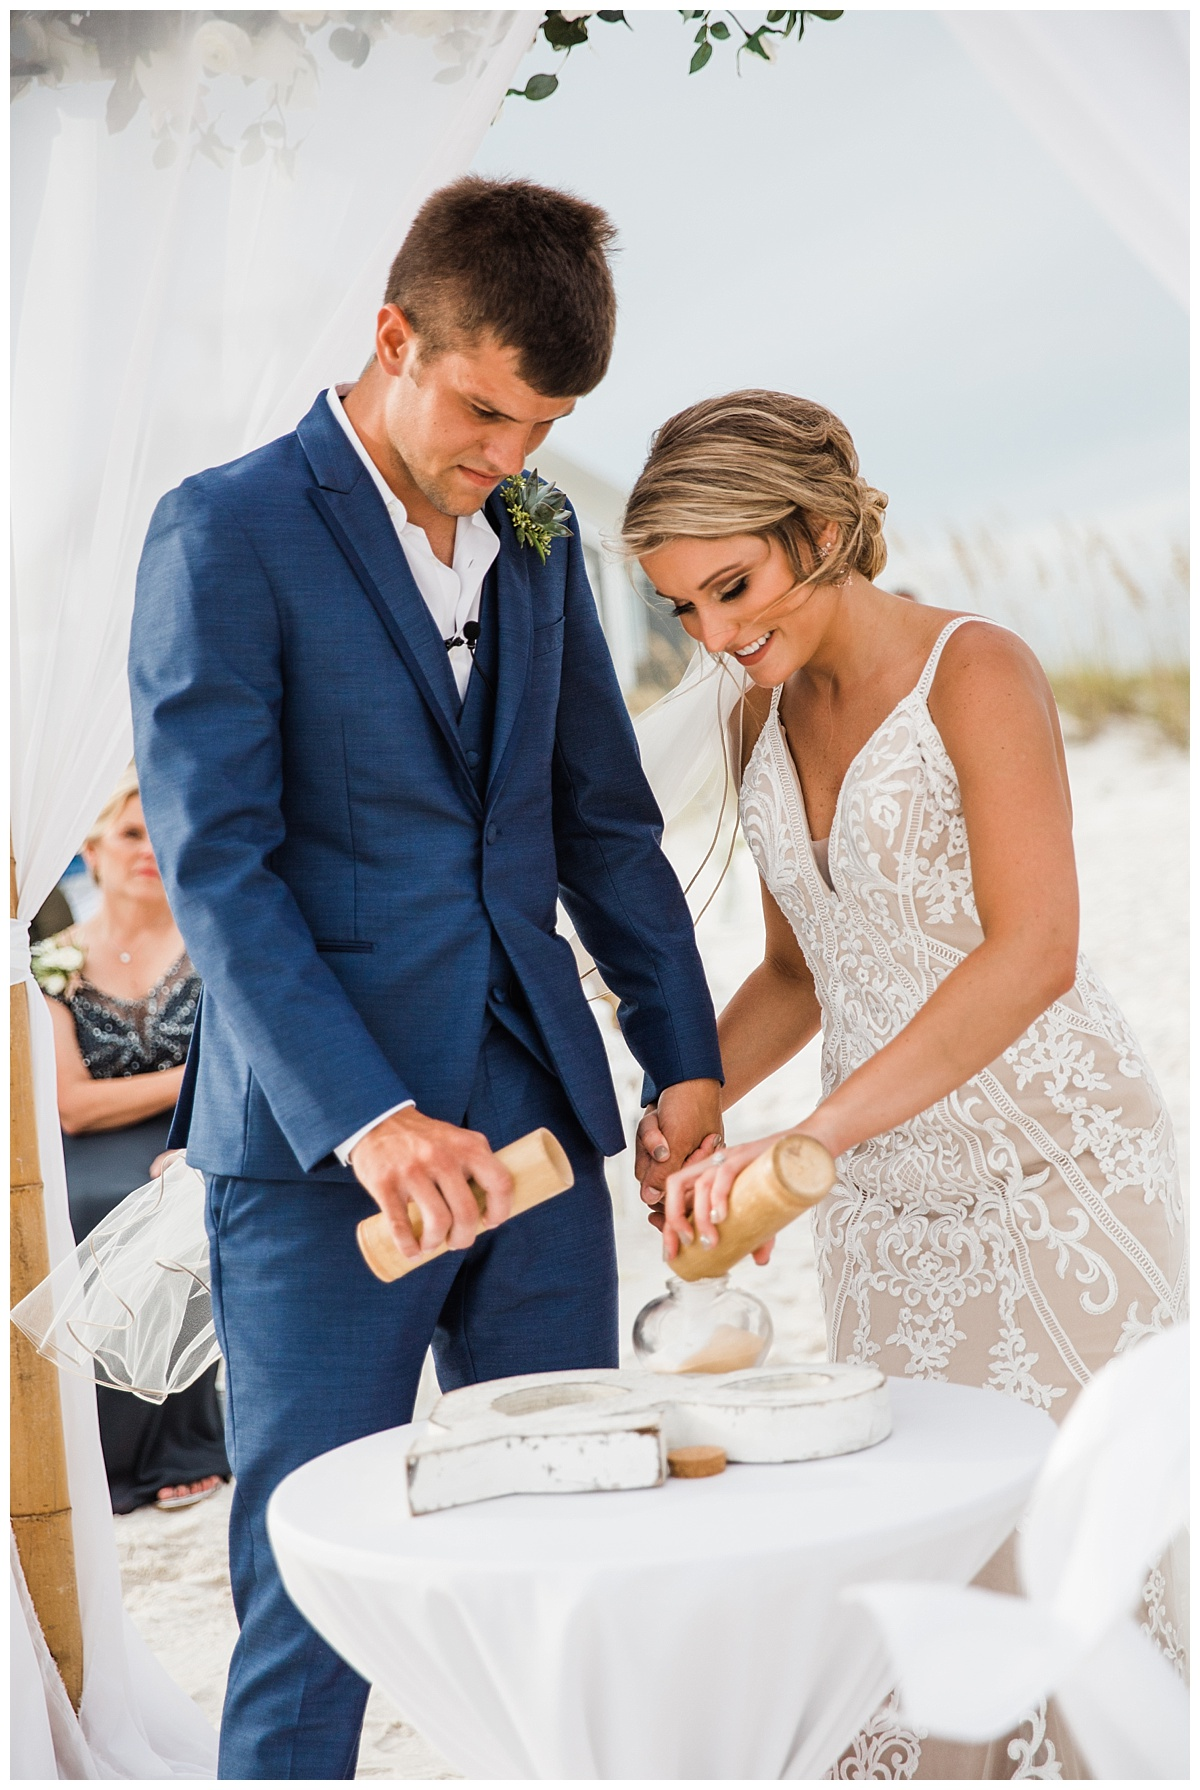 Sand Ceremony for Beach Weddings